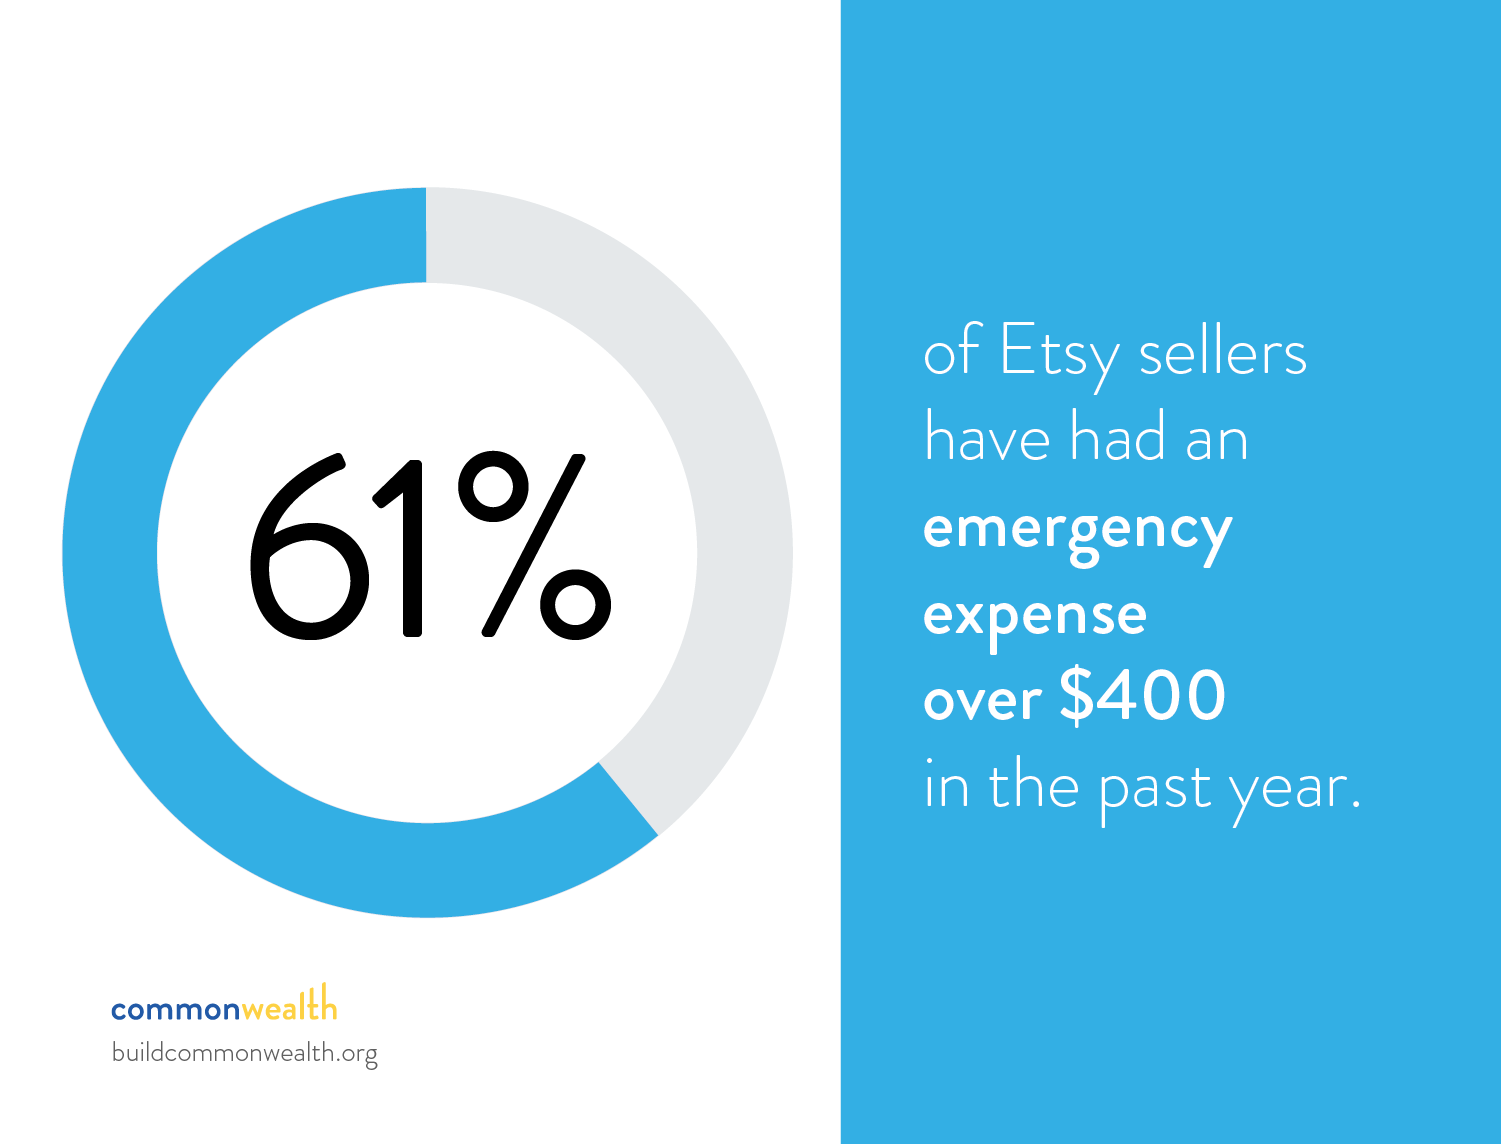 30% of Etsy Sellers Don't Save Emergency Funds